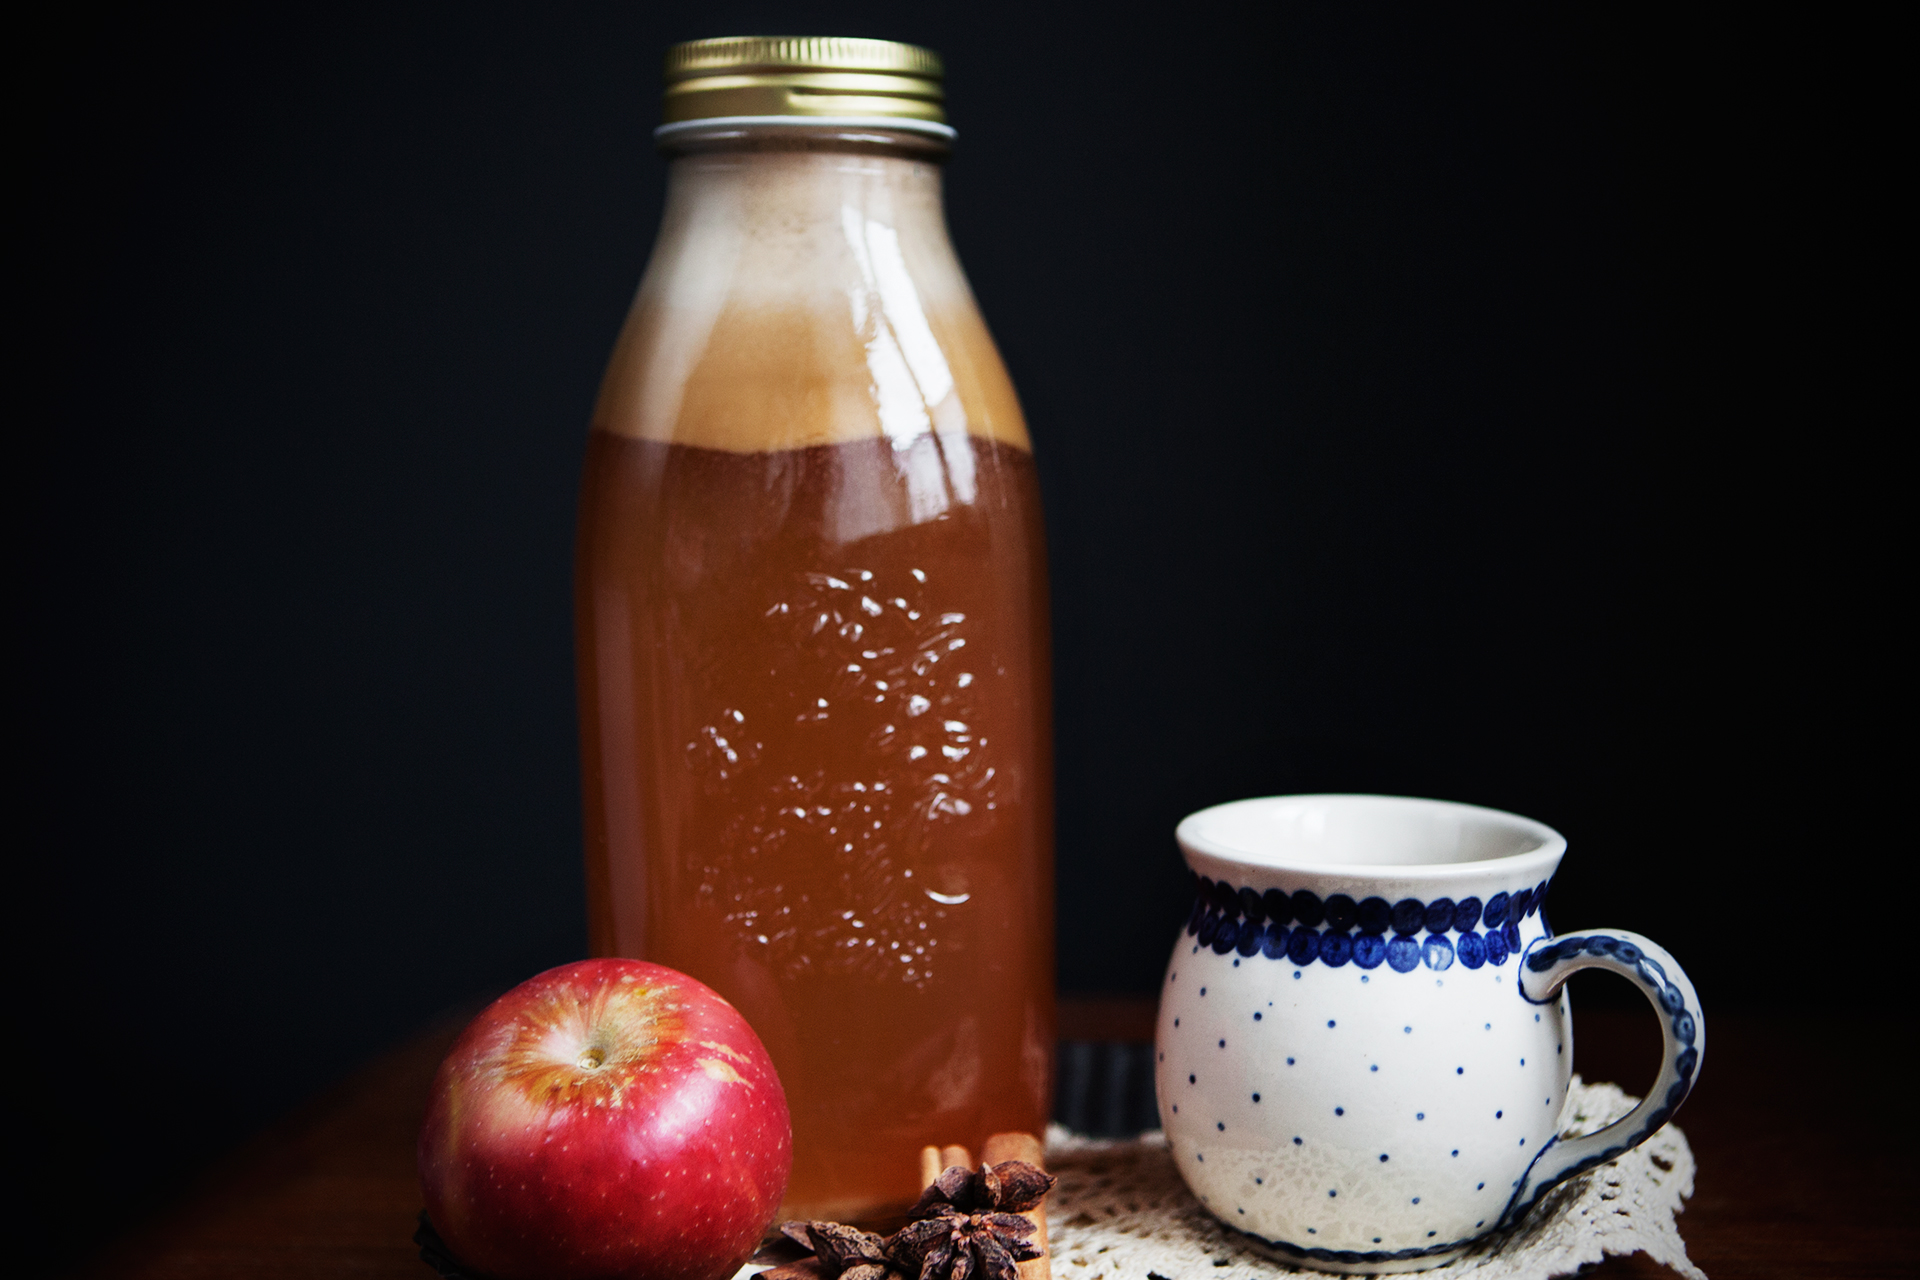 Recipe: Apple Cider